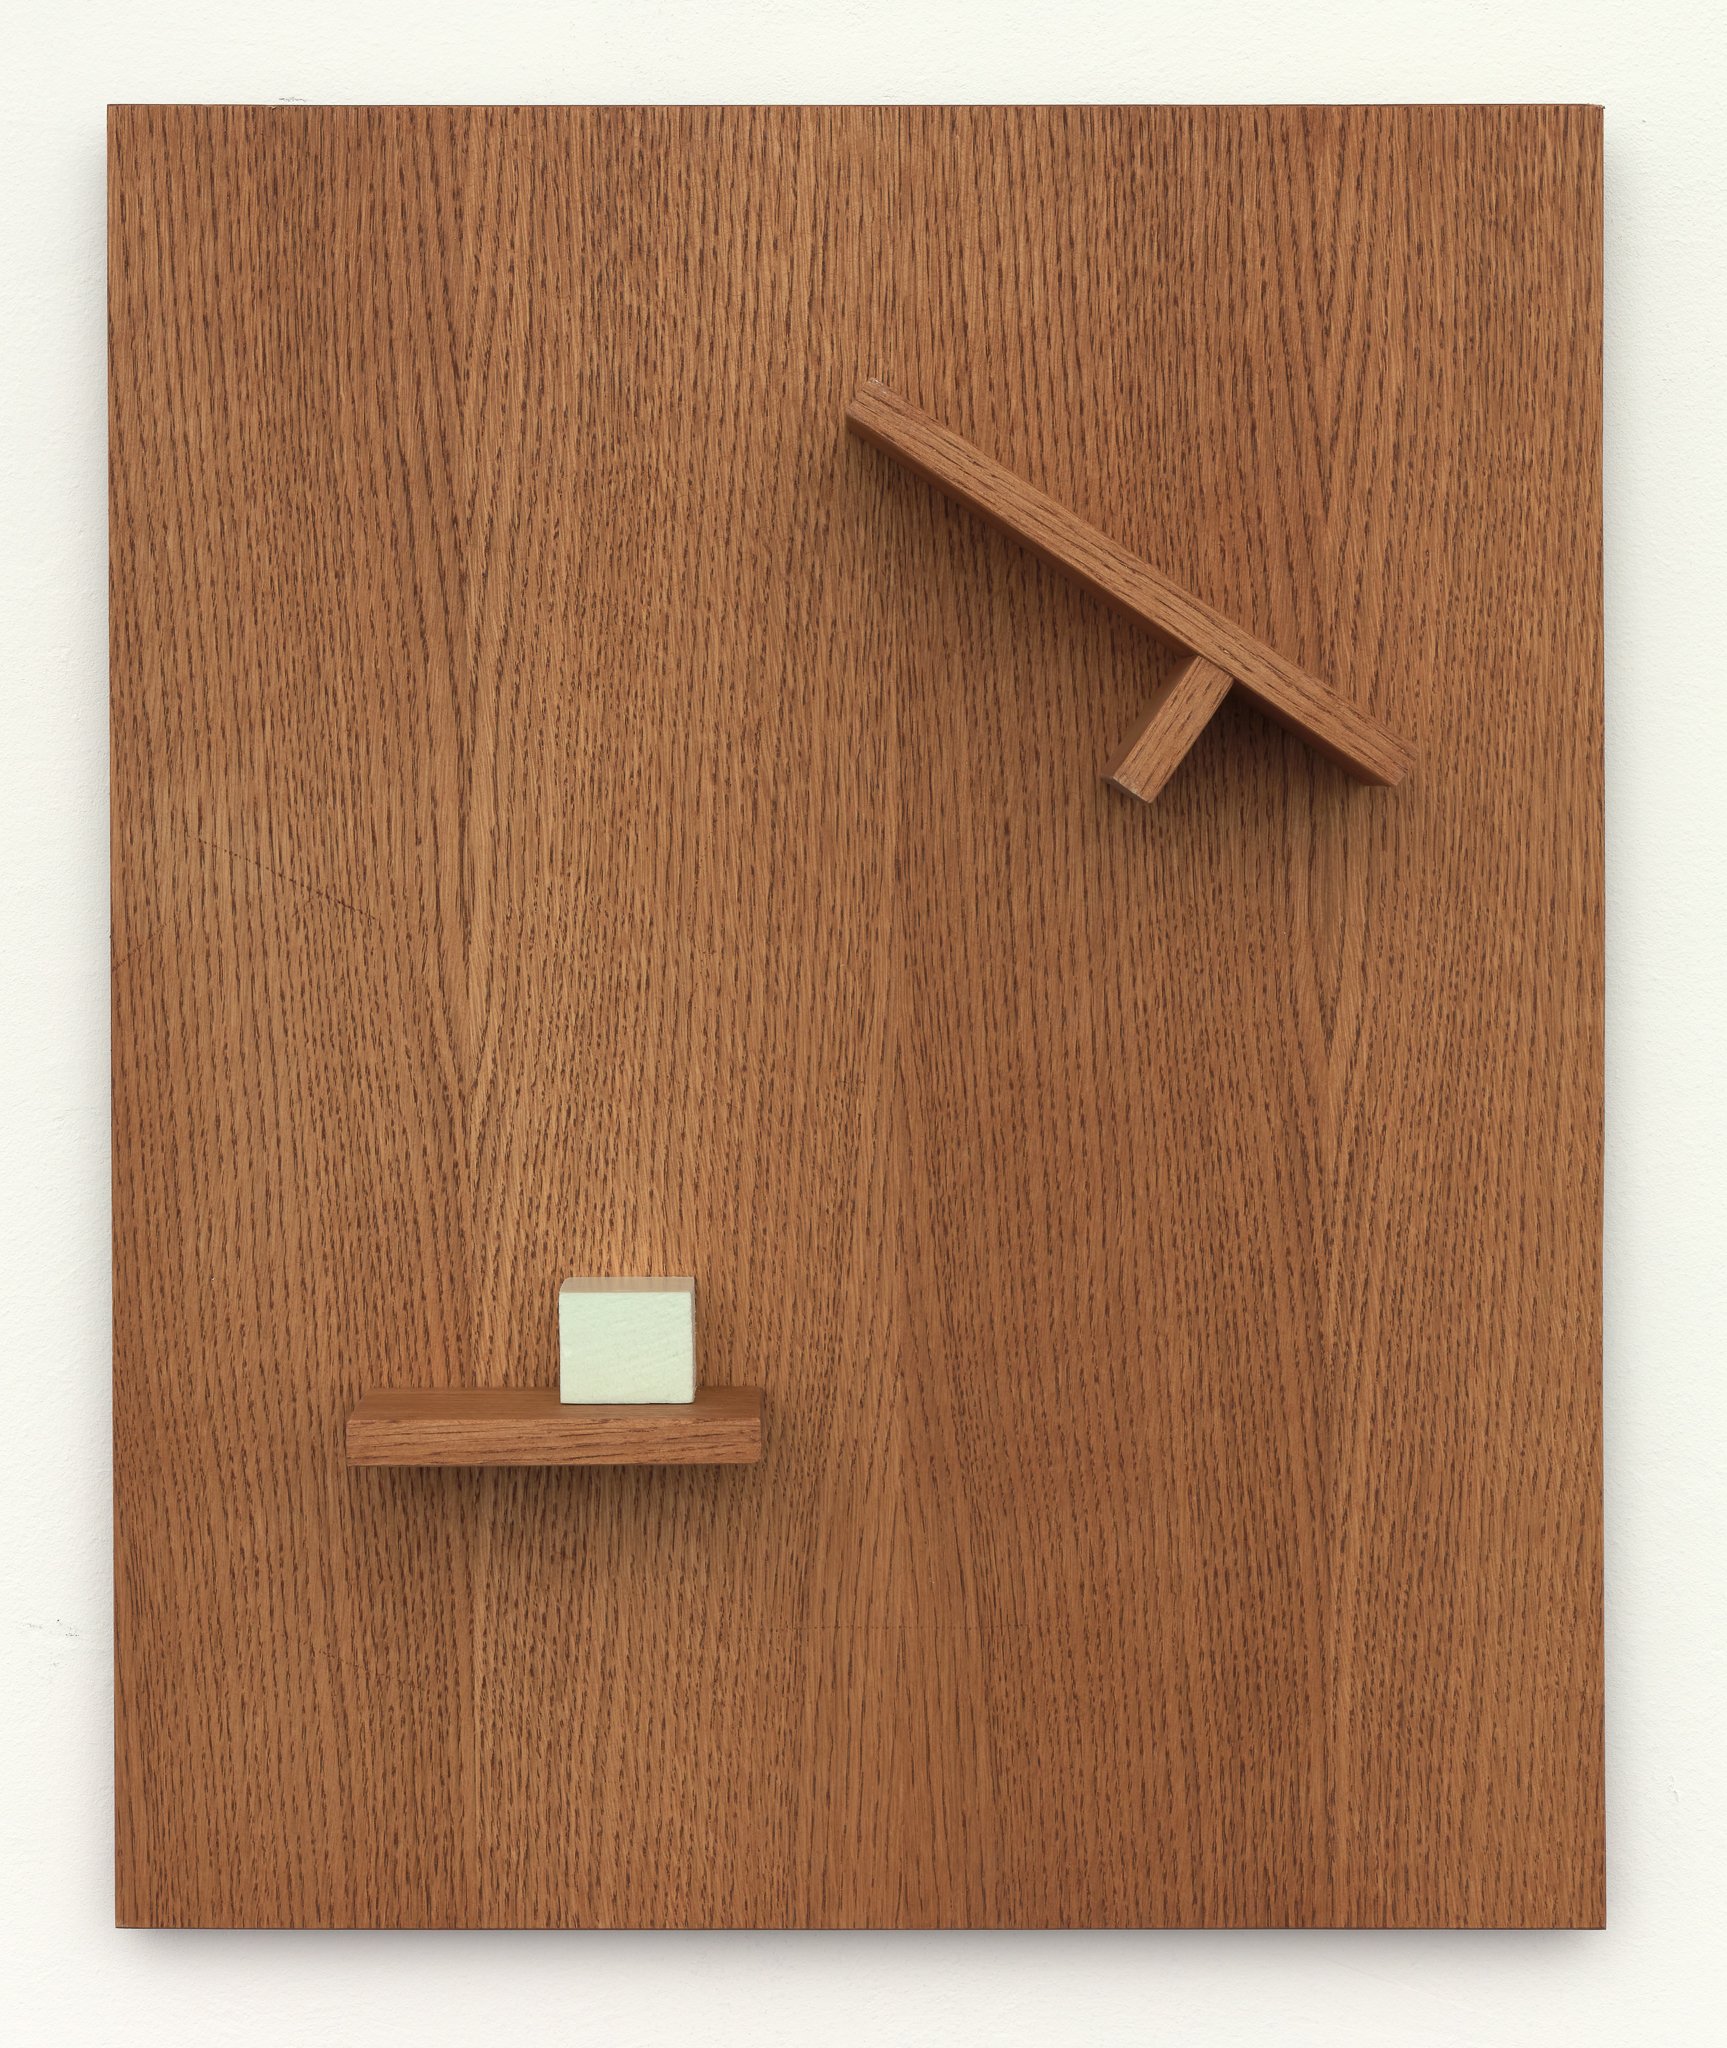 Wesley Meuris - Replacing (2 shelves, 1 cube), 2020